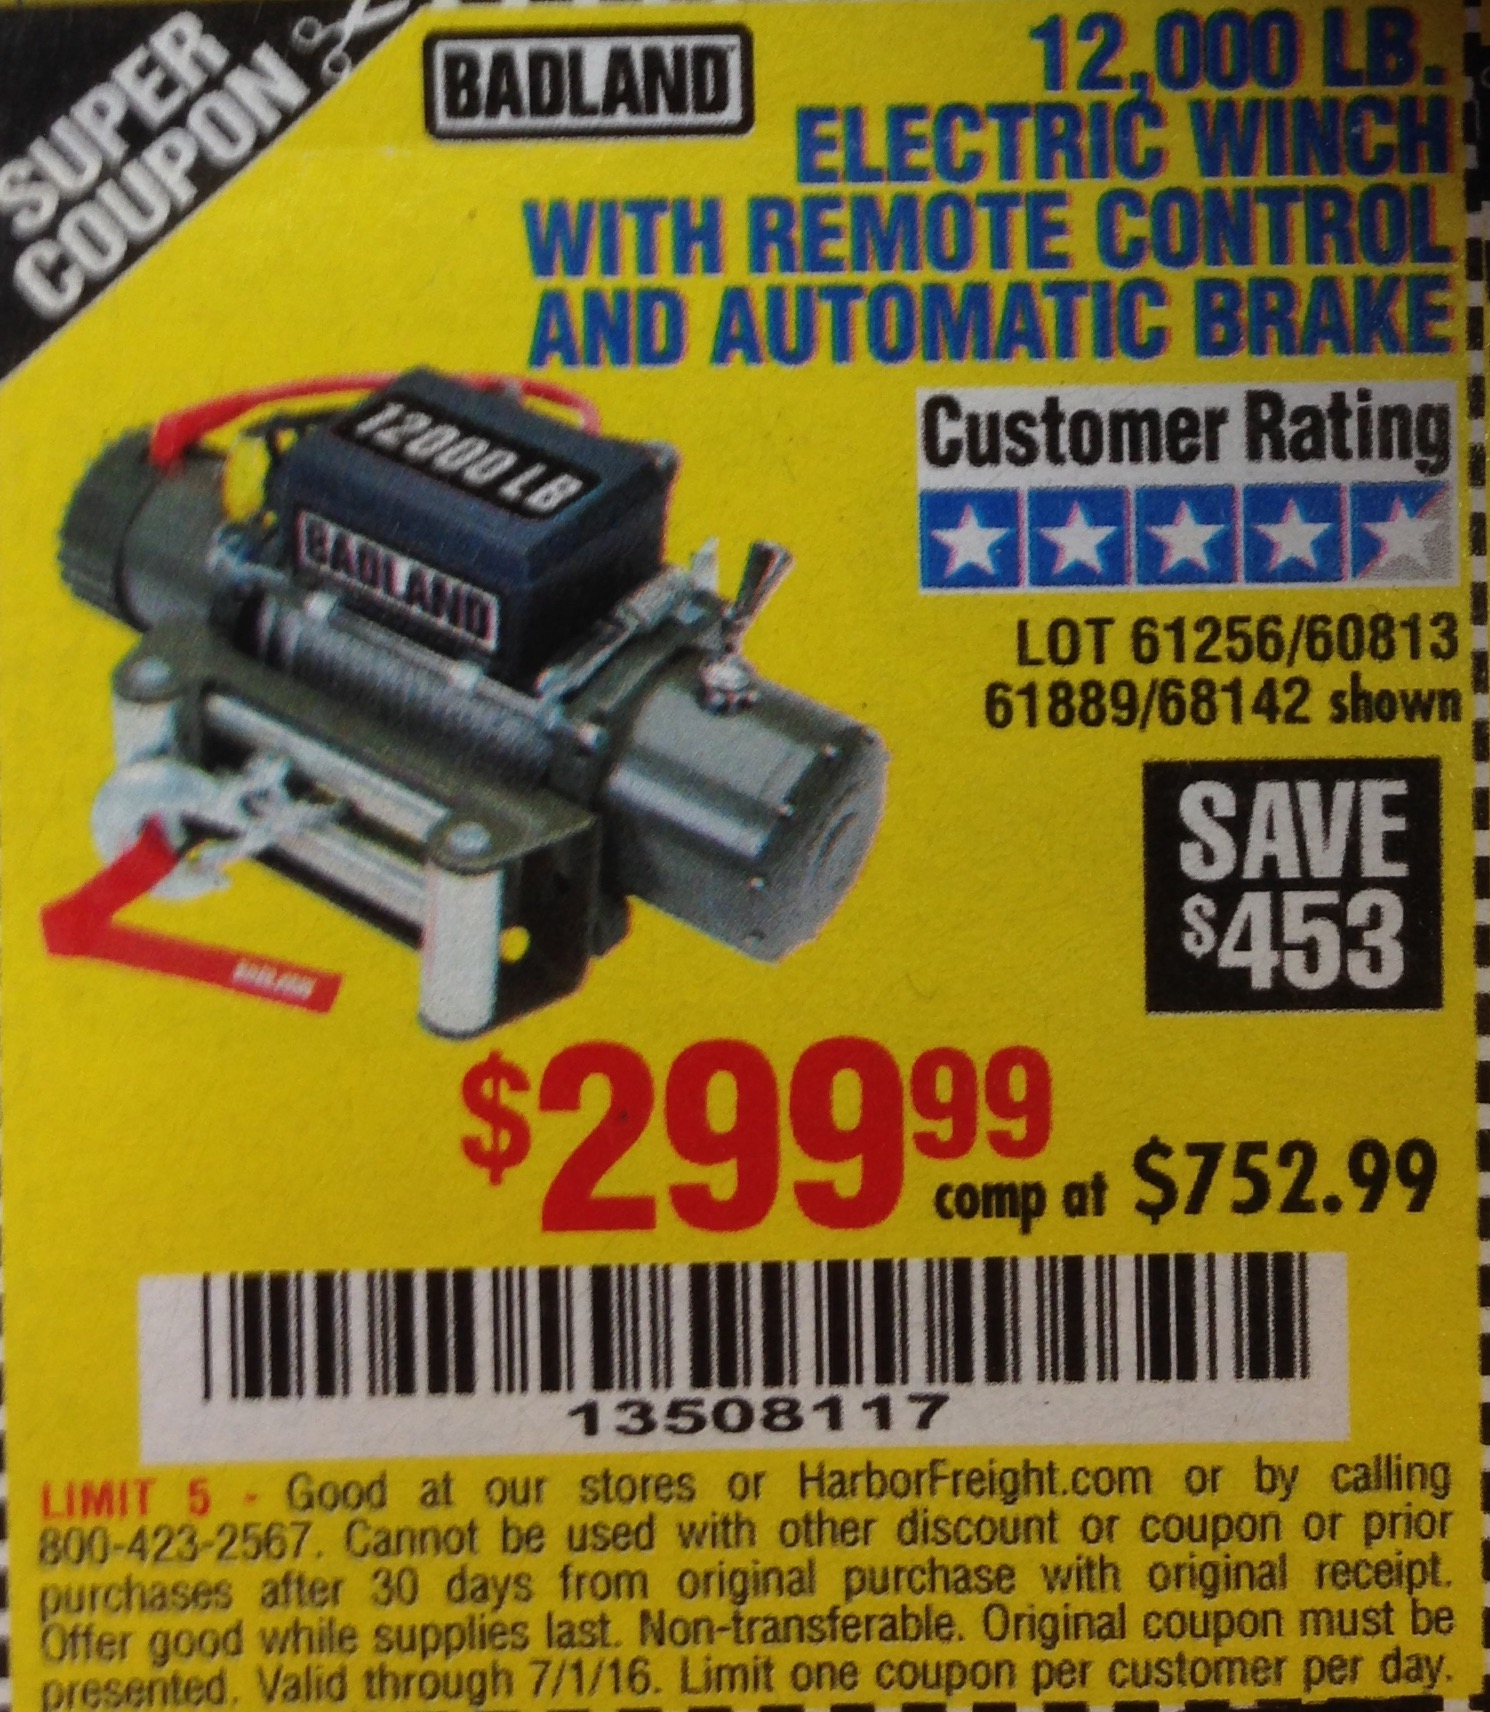 Harbor Freight Winch Coupon 12000 Omega Sports Printable Badland Wiring Diagram Im Pretty Sure You Can Print Out A 20 Off And Buy It